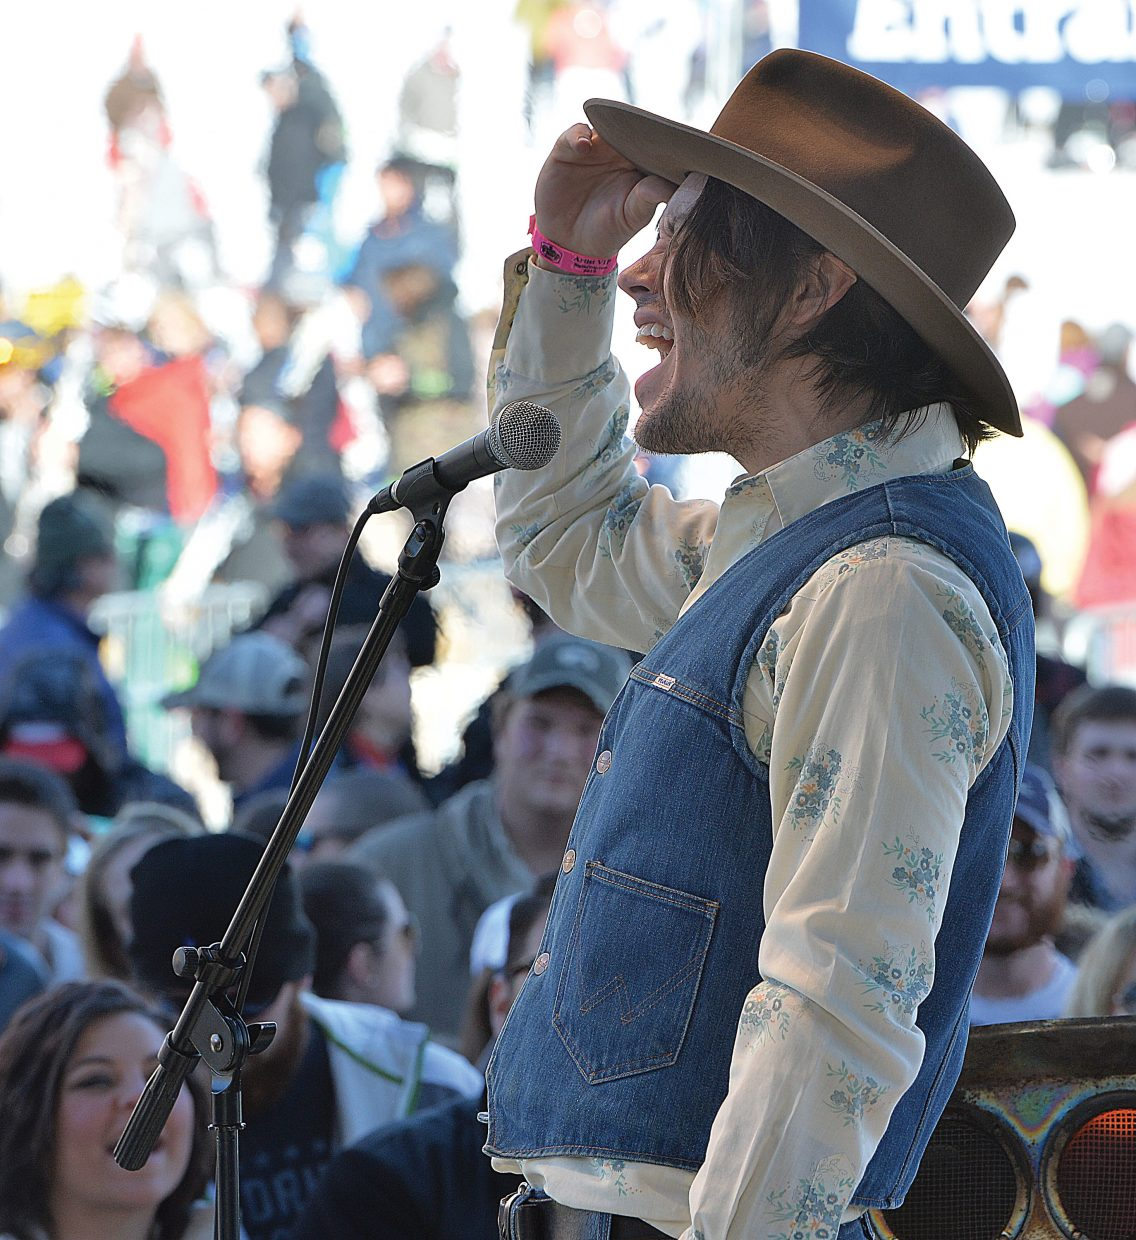 Jonathan Tyler tips his hat to the crowd after his band performed live Wednesday afternoon during a free concert in Gondola Square.